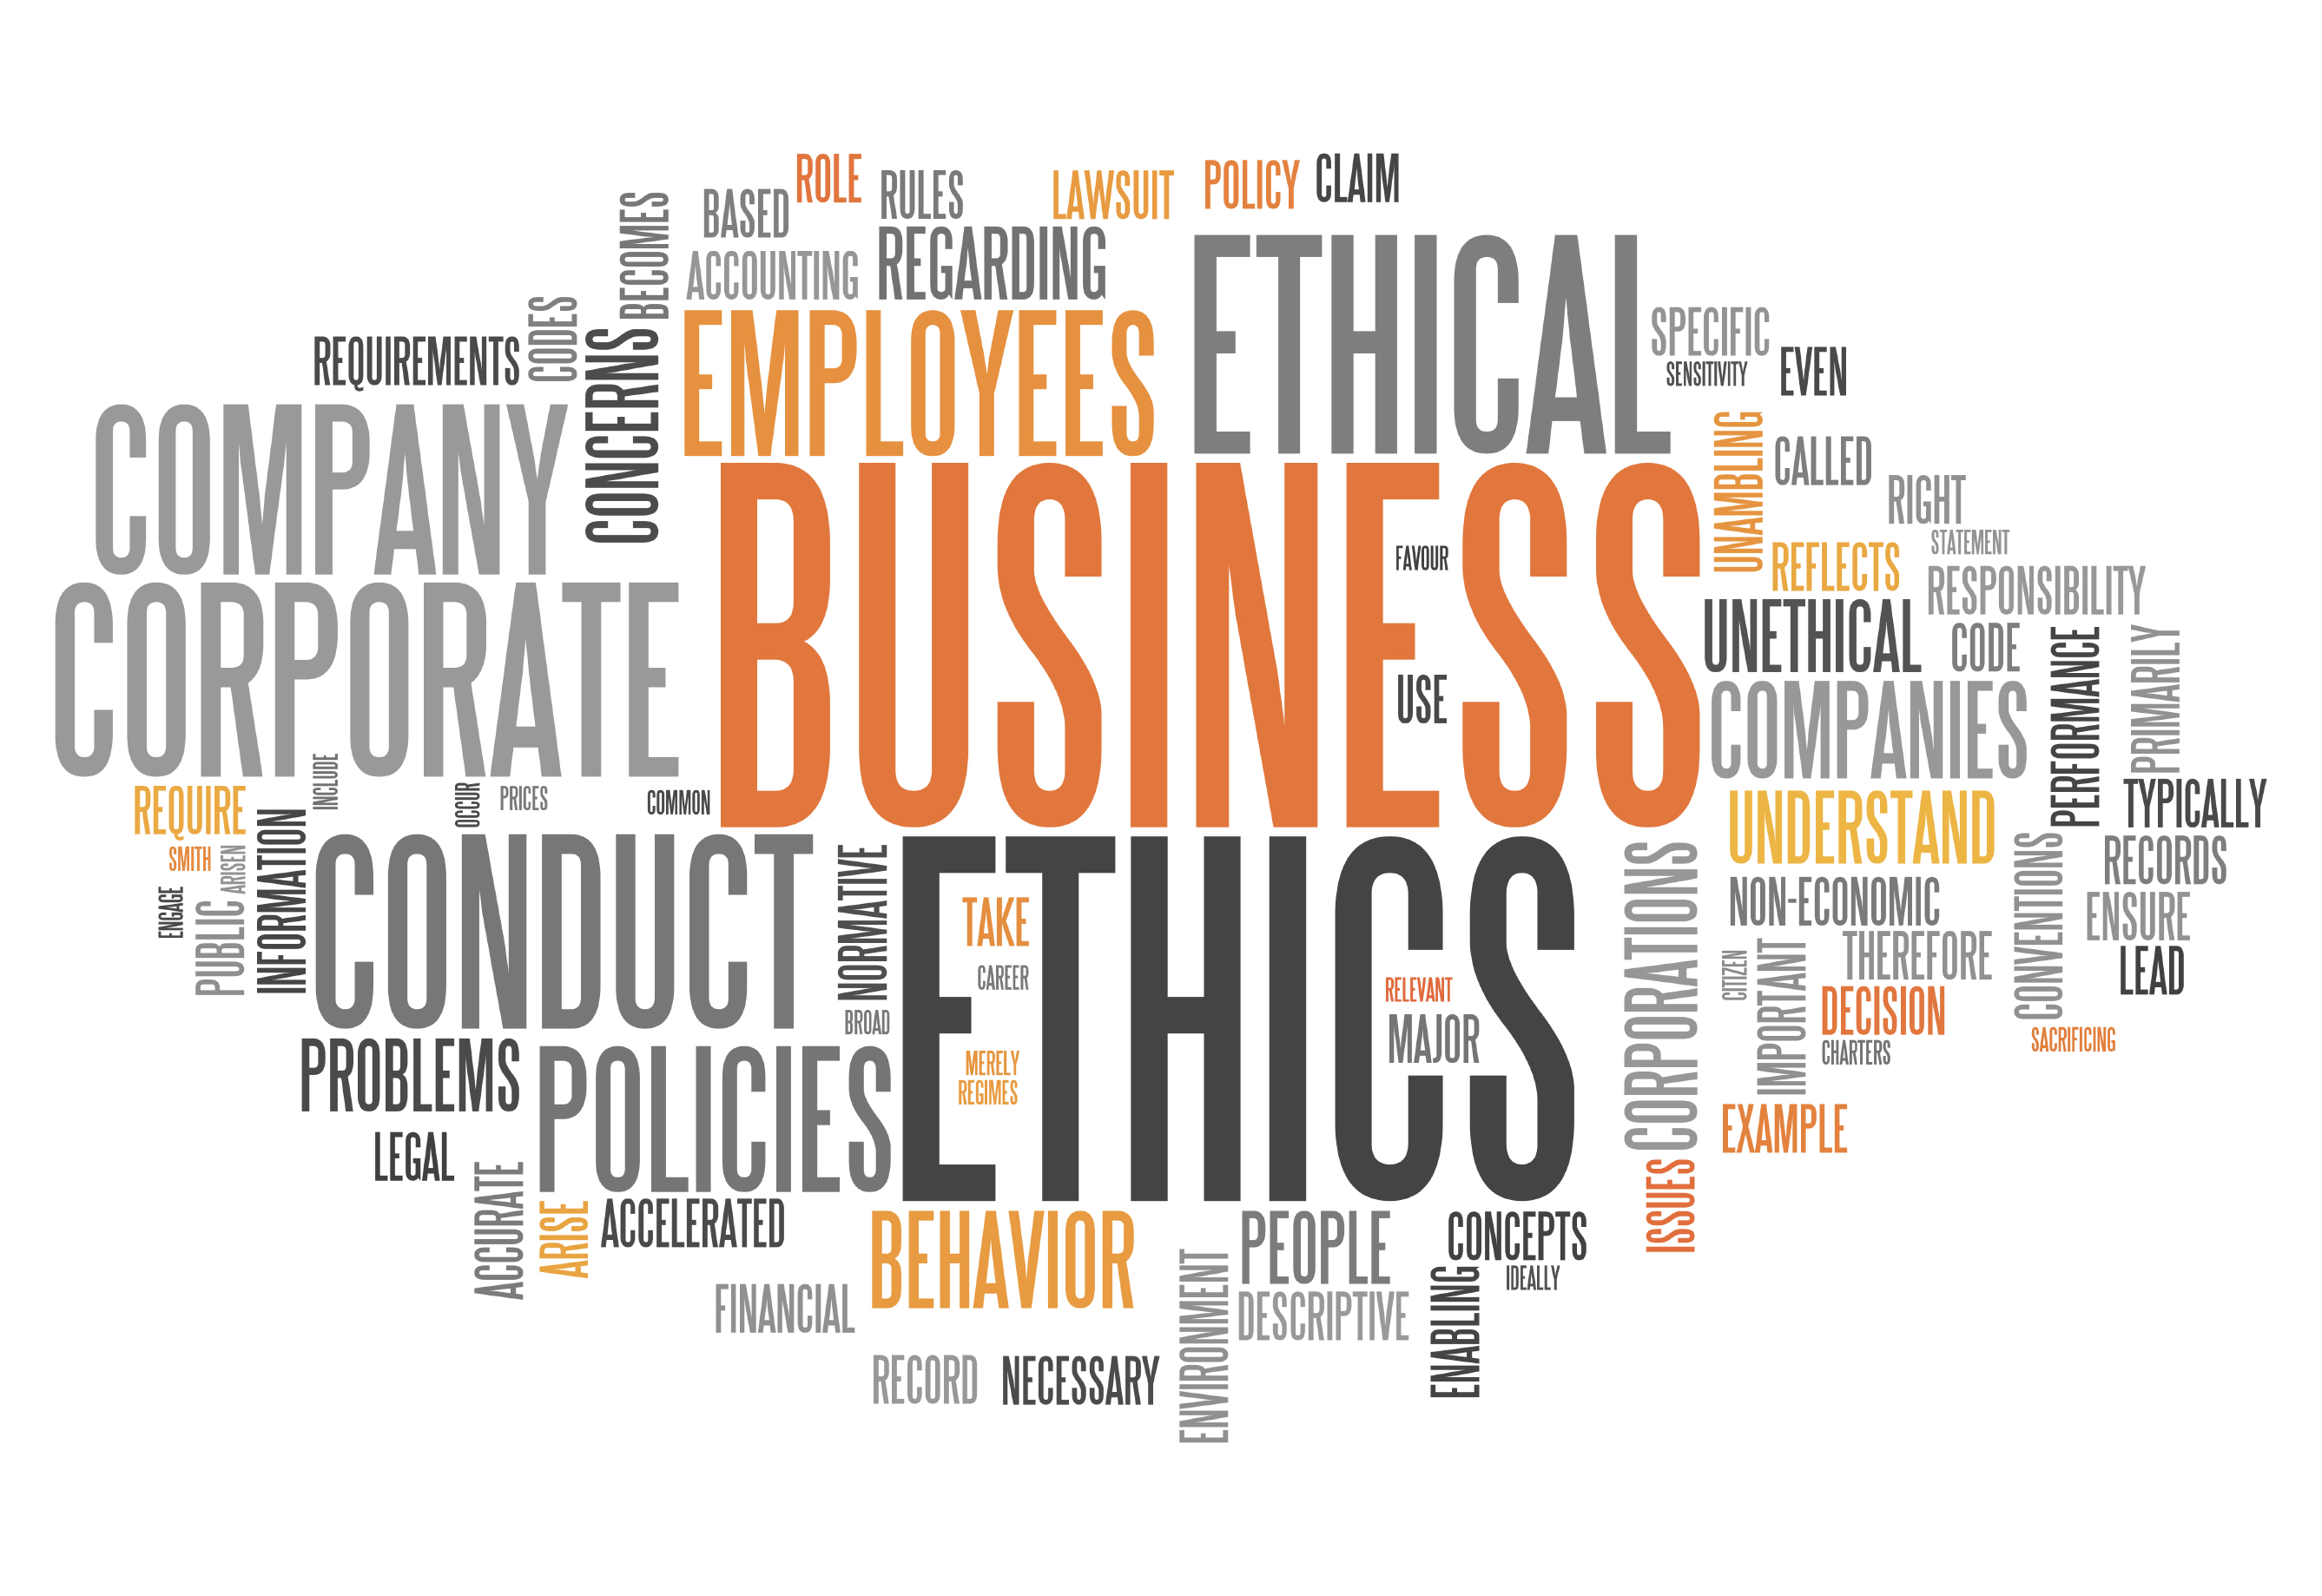 business ethics is more a matter of religion than management Companies that lay the framework for business ethics in all facets of operation are more likely to become and remain profitable than those that conduct business in an unethical manner.